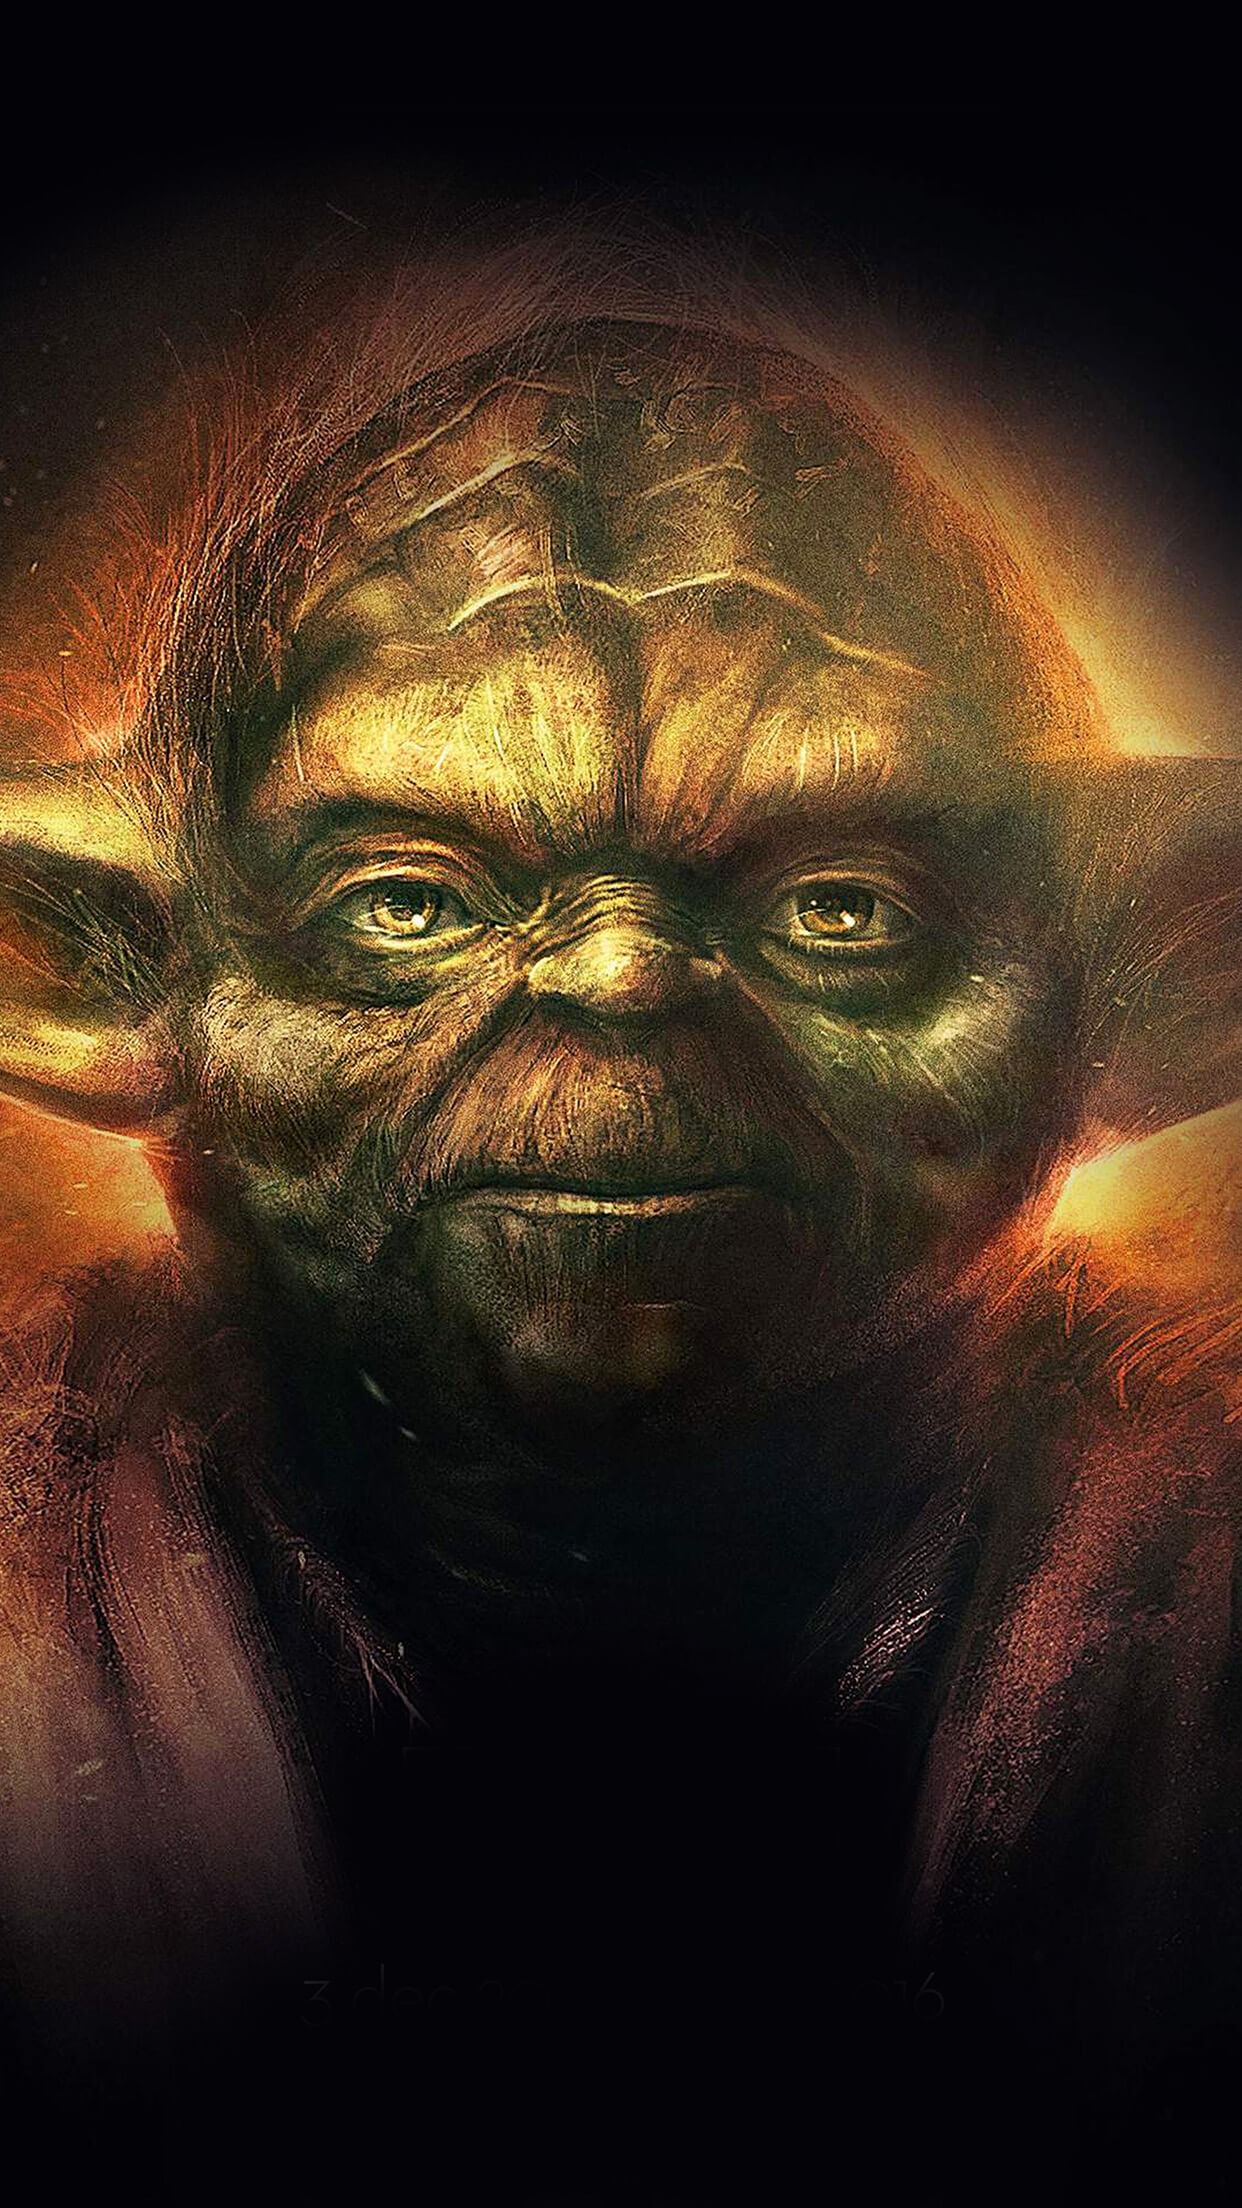 Iphone wallpaper yoda - Star Wars Yoda 3wallpapers Iphone Parallax